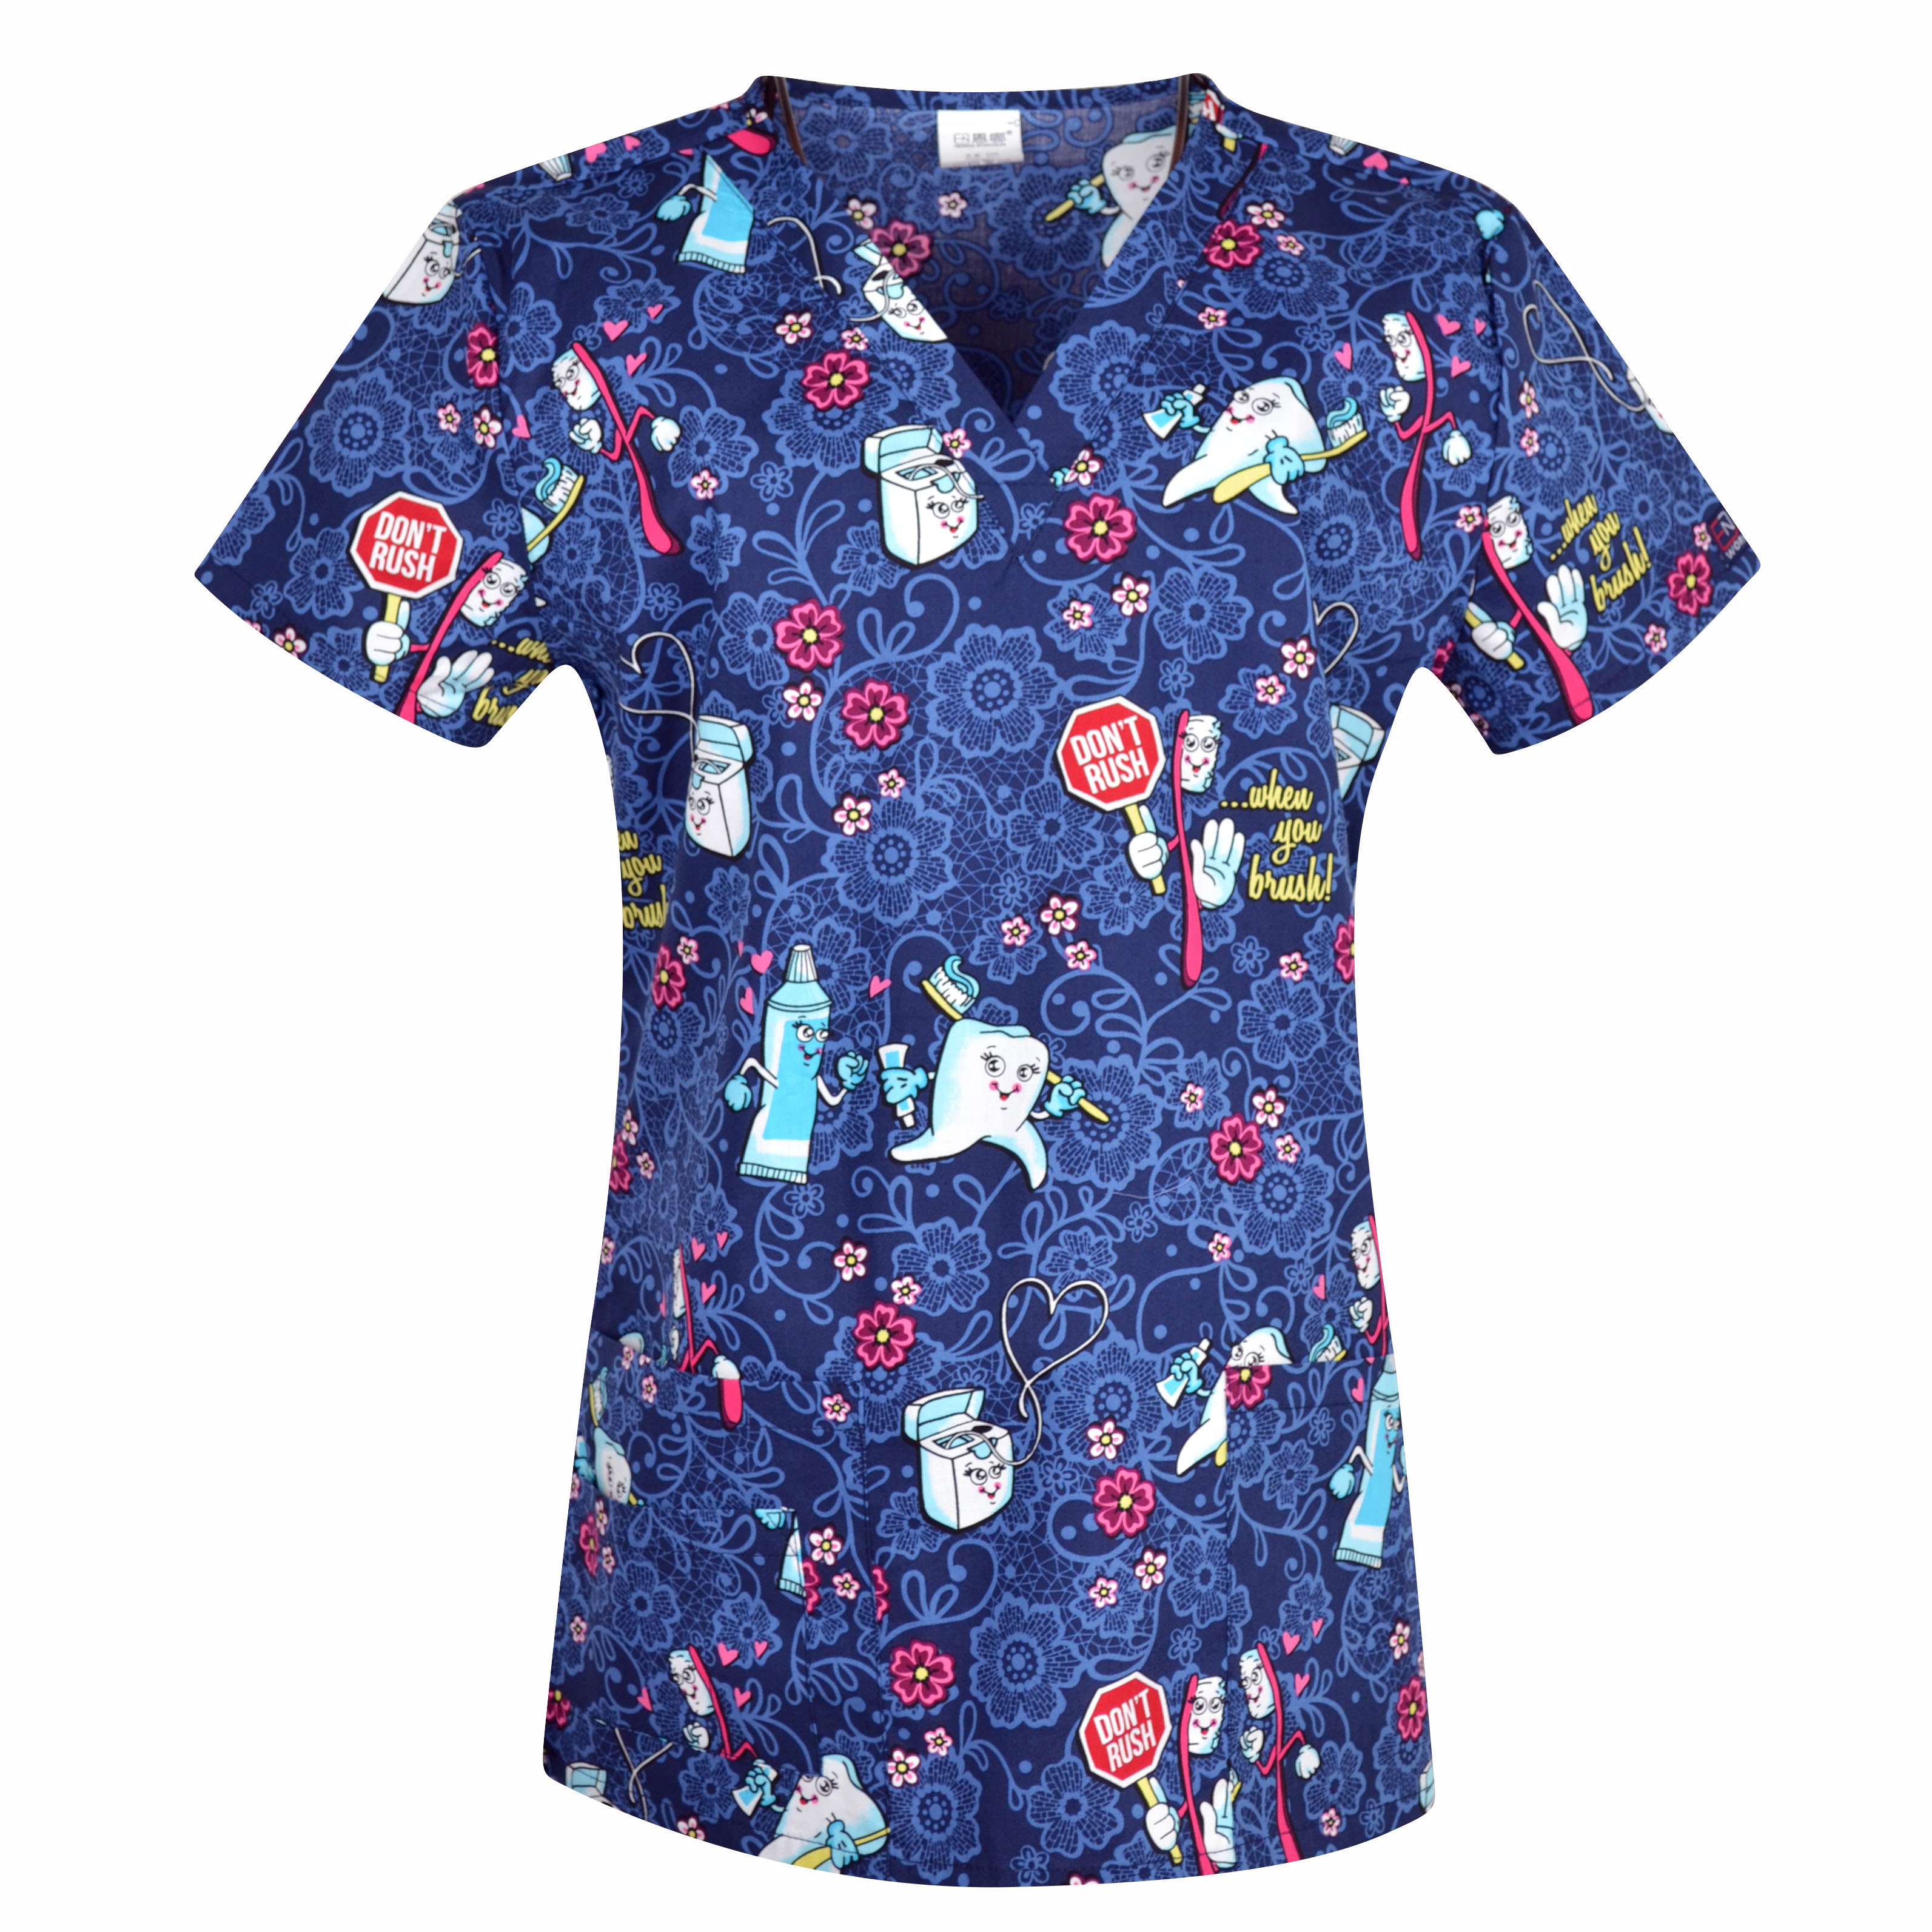 1910 NEW Hennar Women Scrub Top With V-Neck 100% Cotton Print Surgical Medical Uniforms Hospital Nurse Scrub Tops For Women